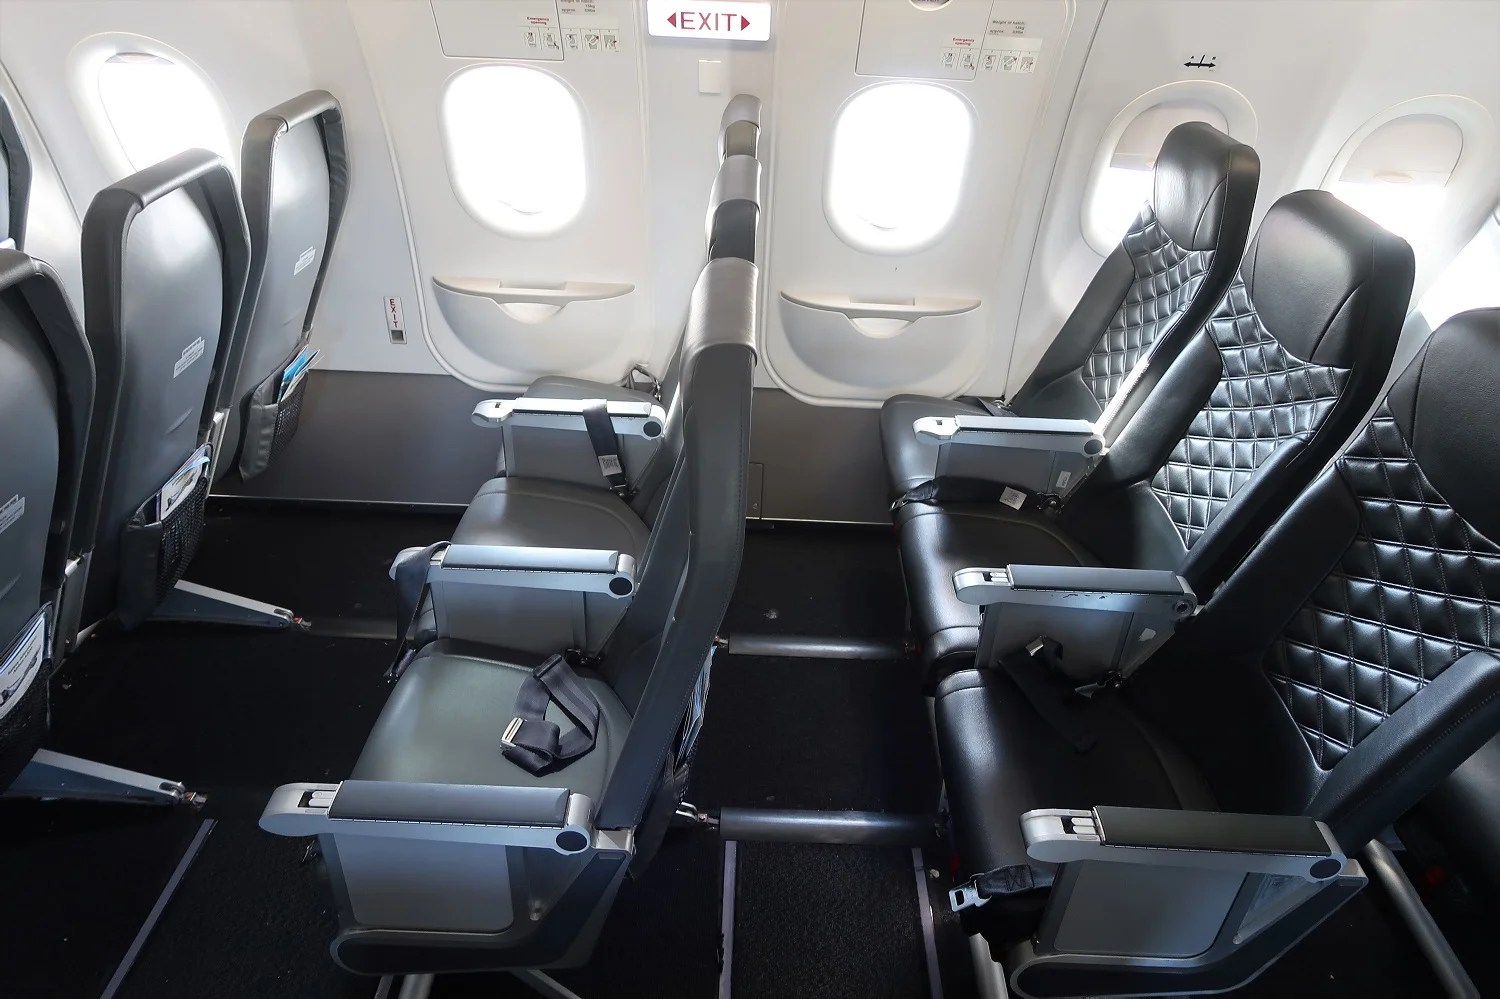 Groovy Ultimate Guide To Snagging Economy Exit Row Seats In The Us Alphanode Cool Chair Designs And Ideas Alphanodeonline